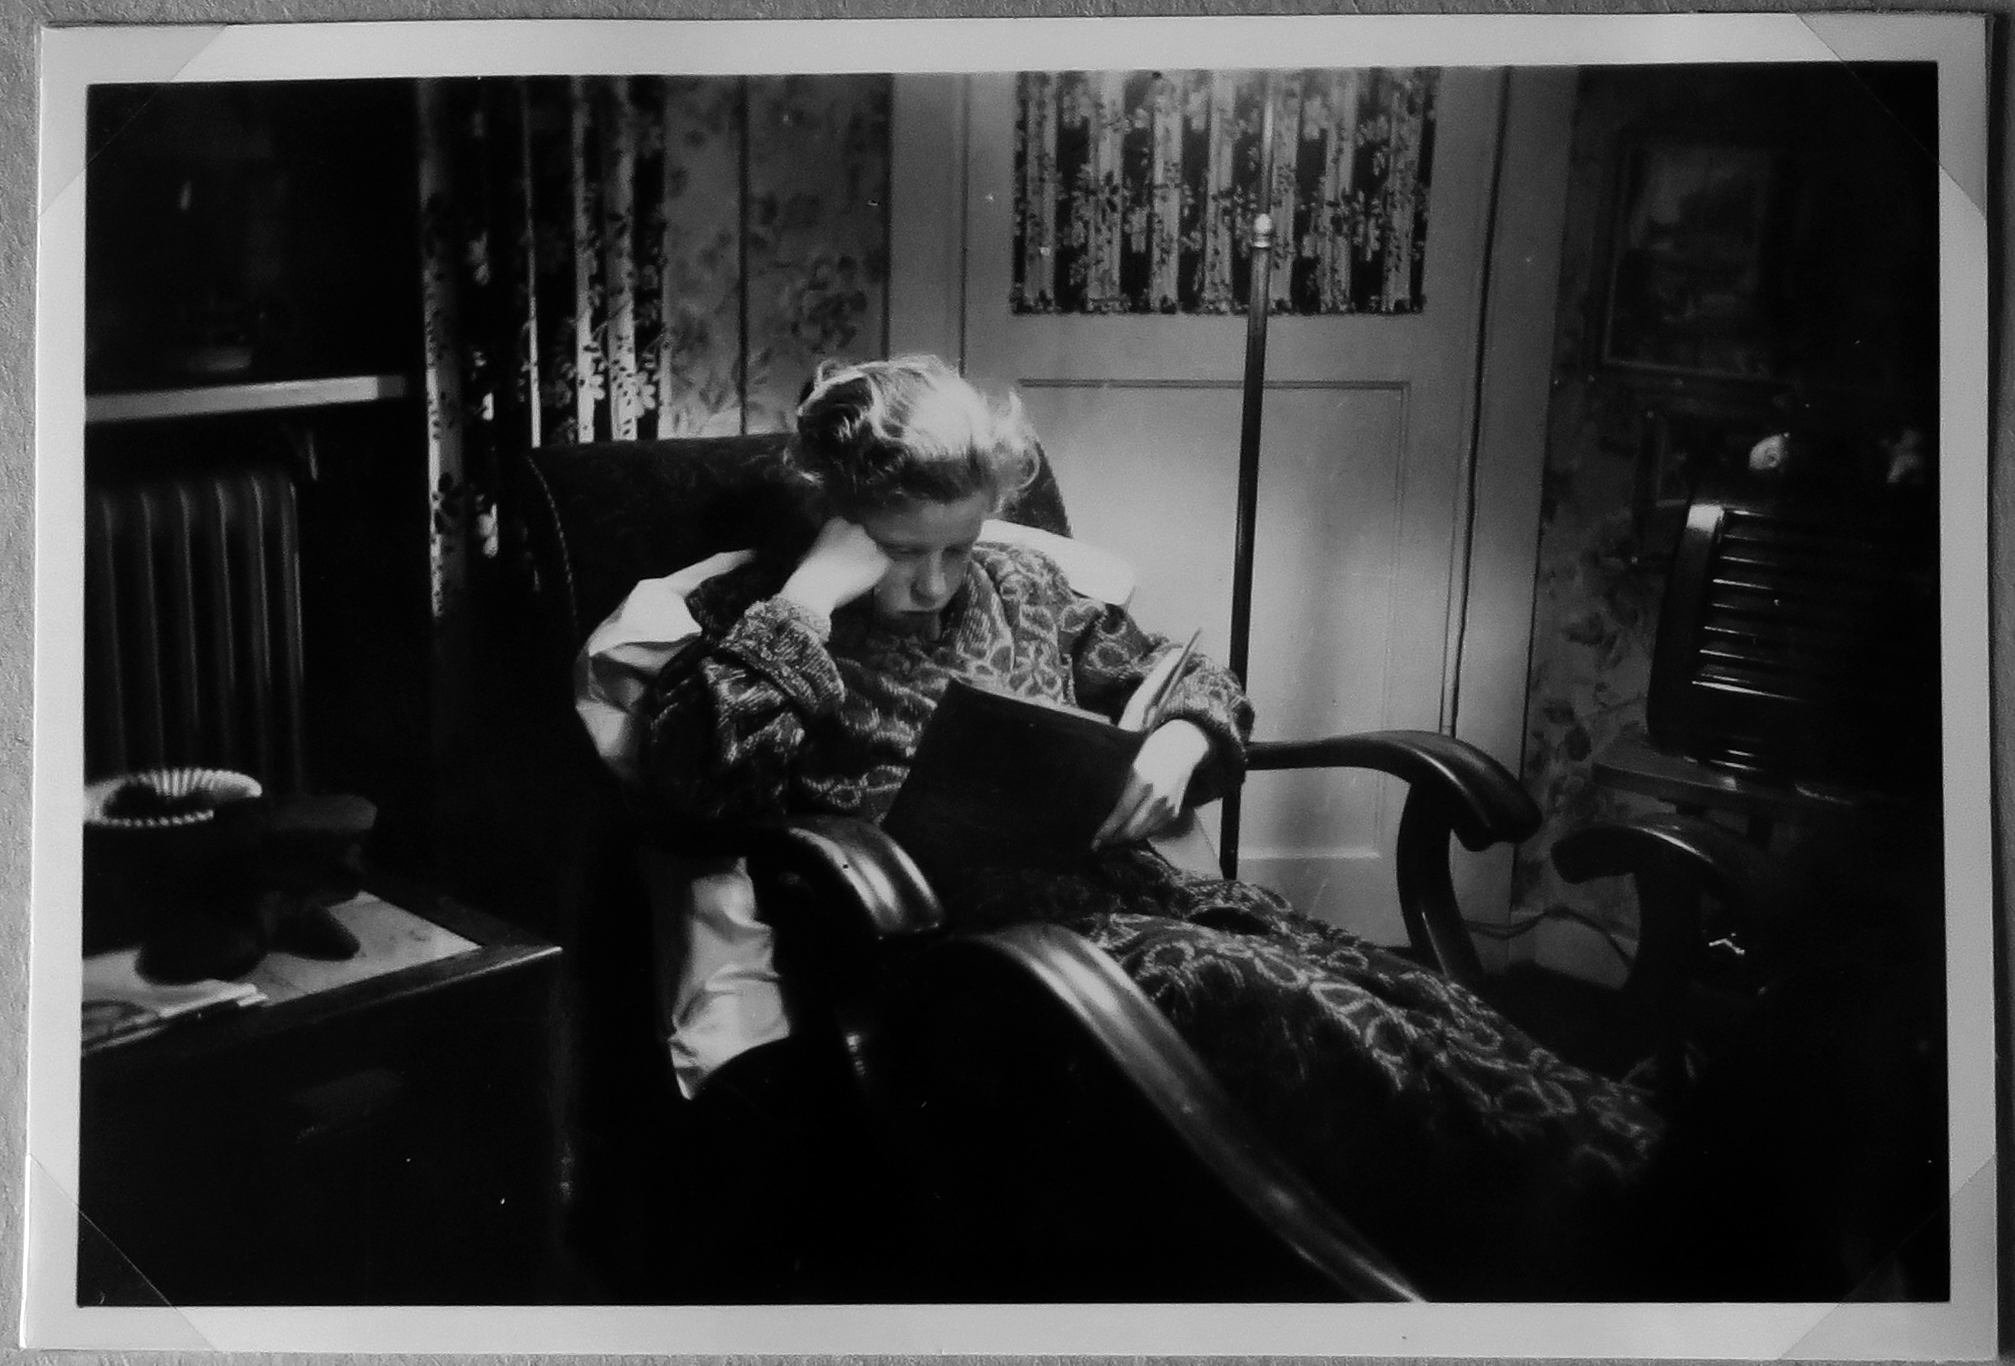 This image, a child safely tucked up in a chair in a modern apartement, could be said to sum up the aim of the then first social housing projects. This is Jette Svane, current chairwoman of the local department of a social housing company to the right of the park, as a child.